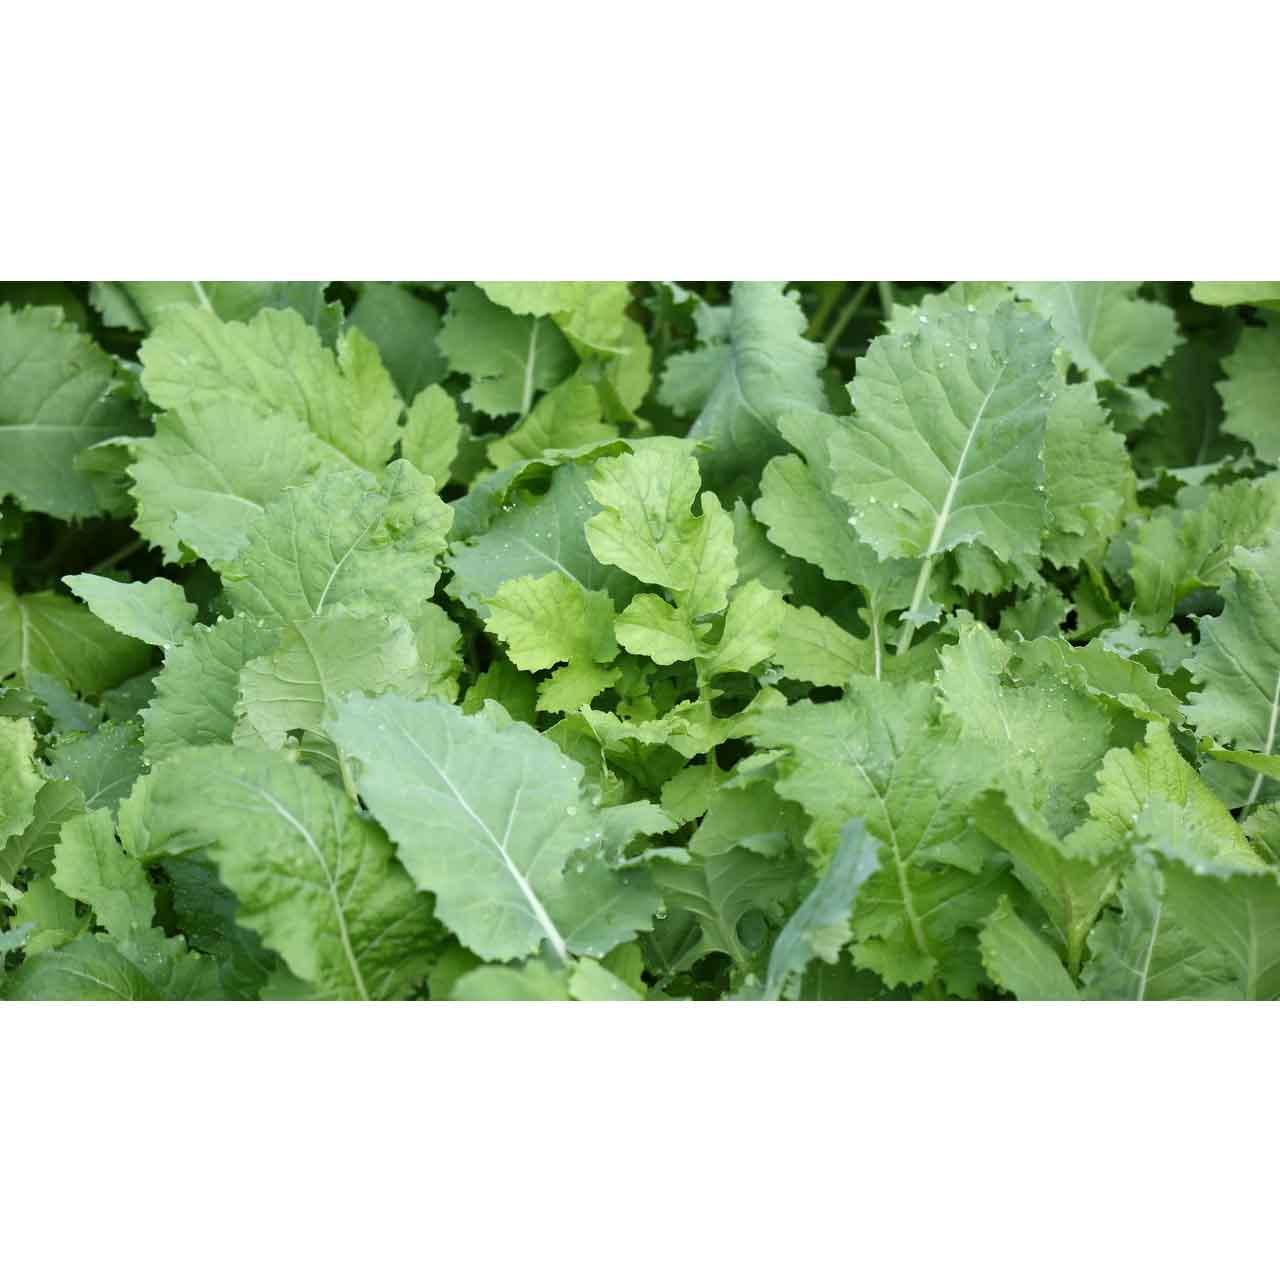 Whitetail Institute Imperial Beets Amp Greens From Buymbs Com